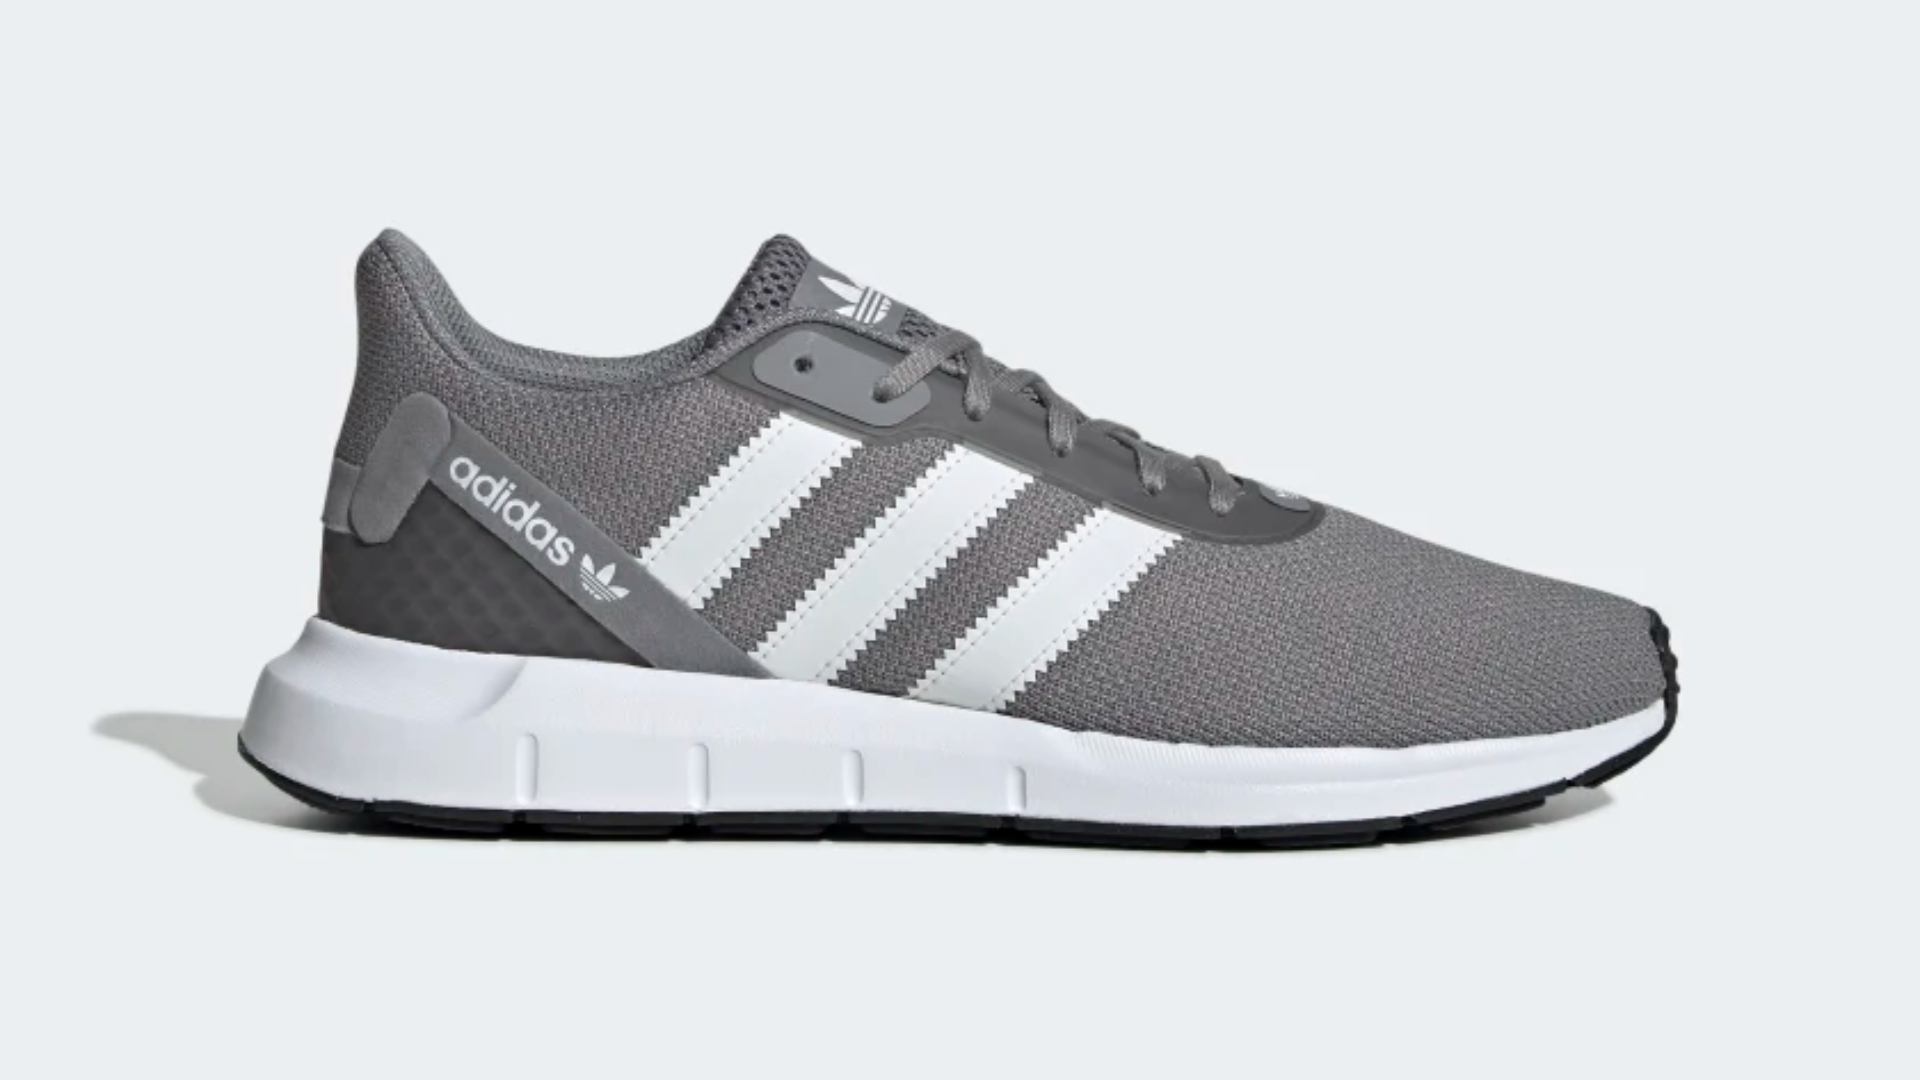 Guerrero escucha obturador  Best Adidas trainers (2021): great Adidas shoes for style and sport